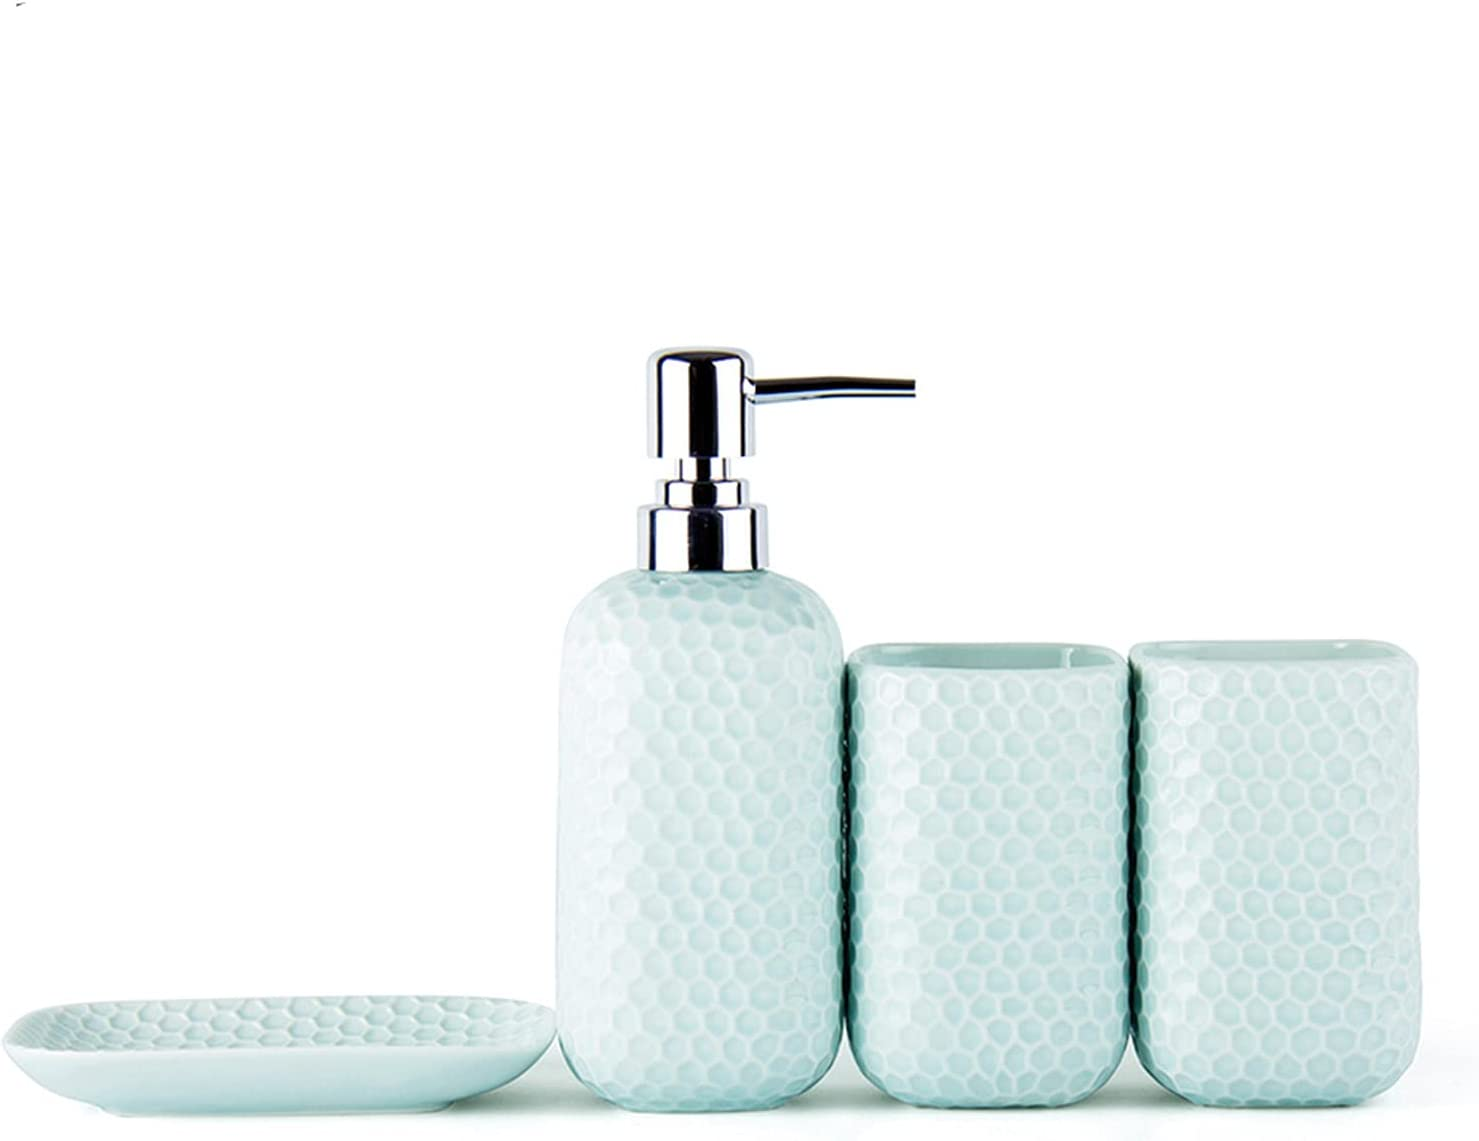 WANLN Ceramic Bathroom Accessories Weekly update Set Or Includes Liquid Soap Max 80% OFF